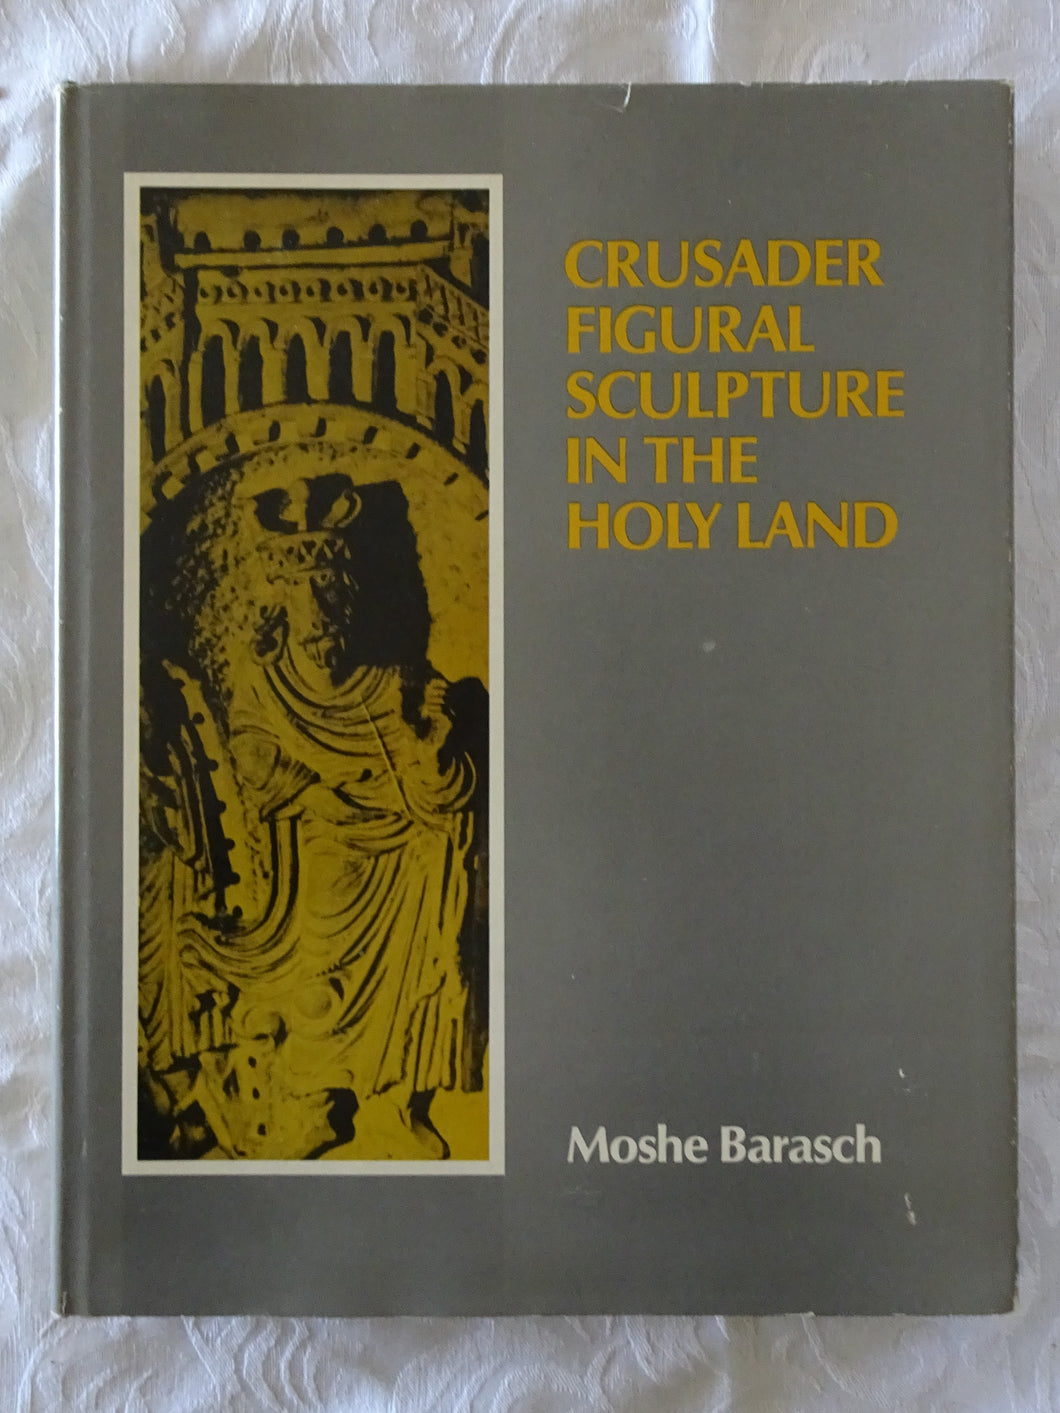 Crusader Figural Sculpture in the Holy Land by Moshe Barasch